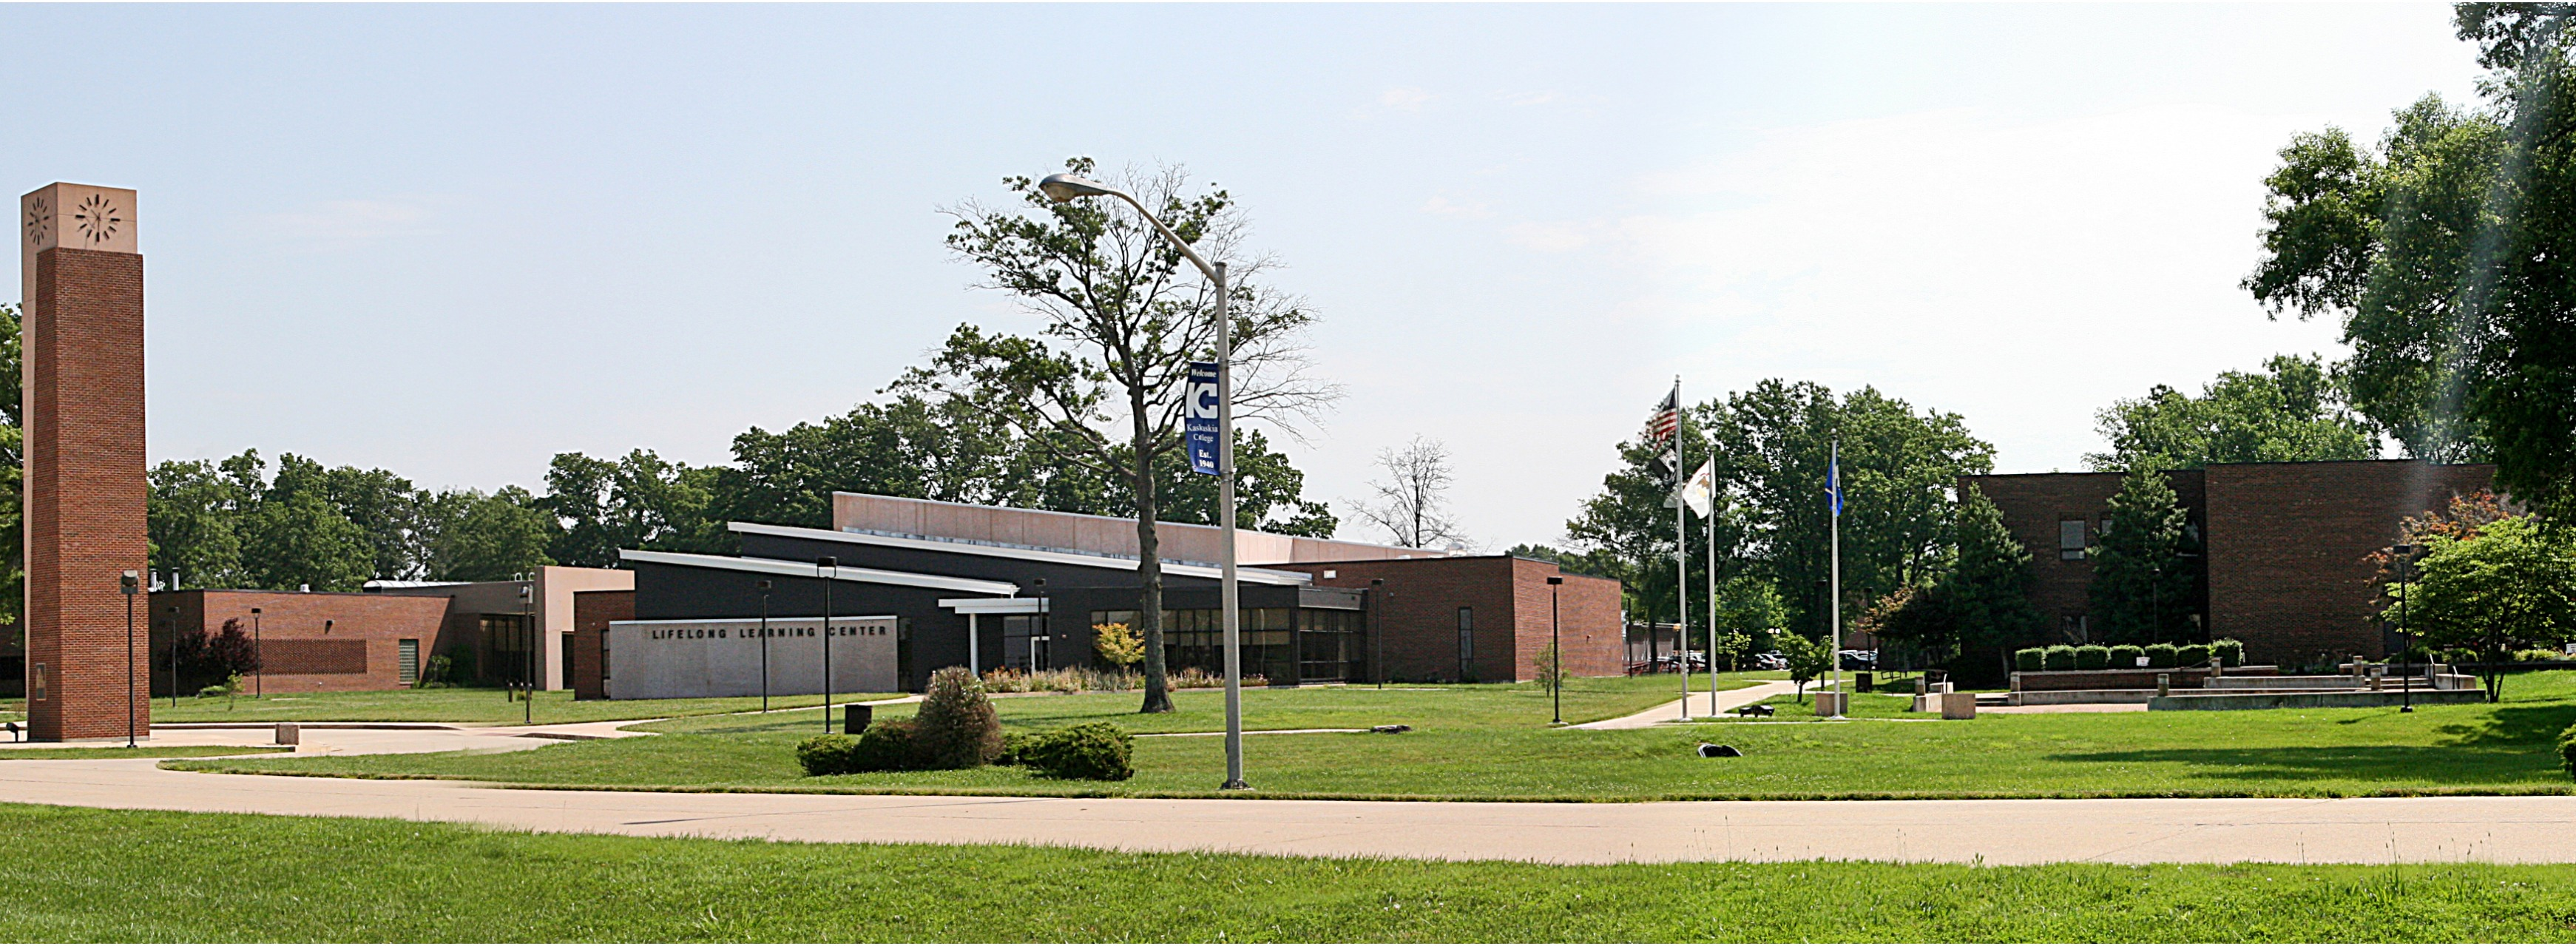 Kaskaskia College Main Campus